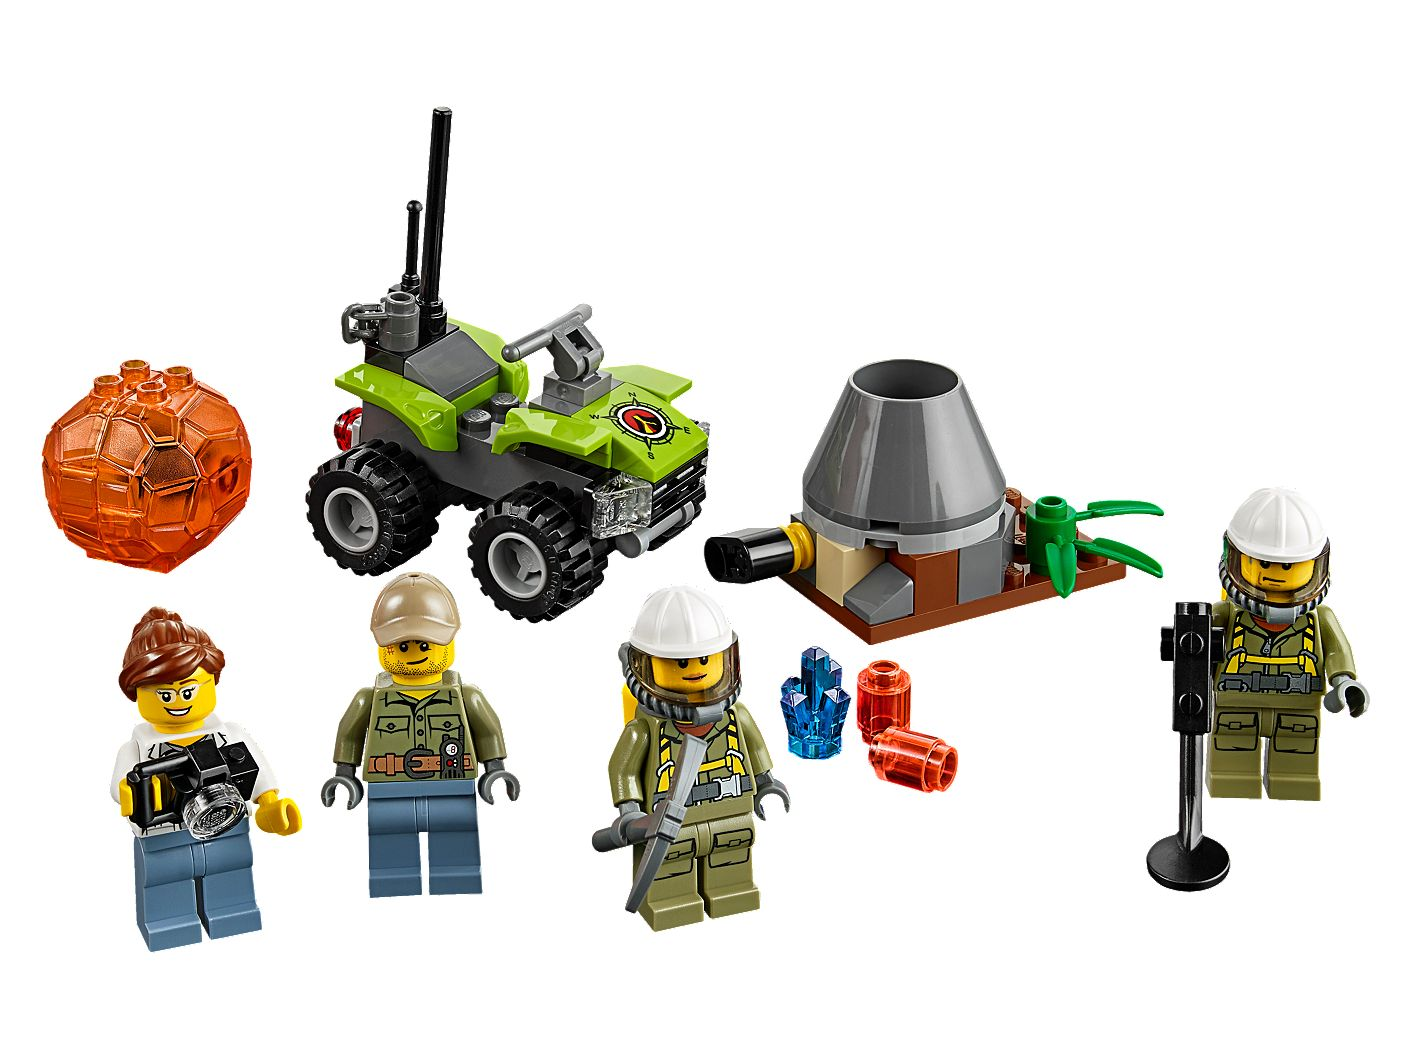 Volcano Starter Set 60120 | City | Buy online at the Official LEGO® Shop US